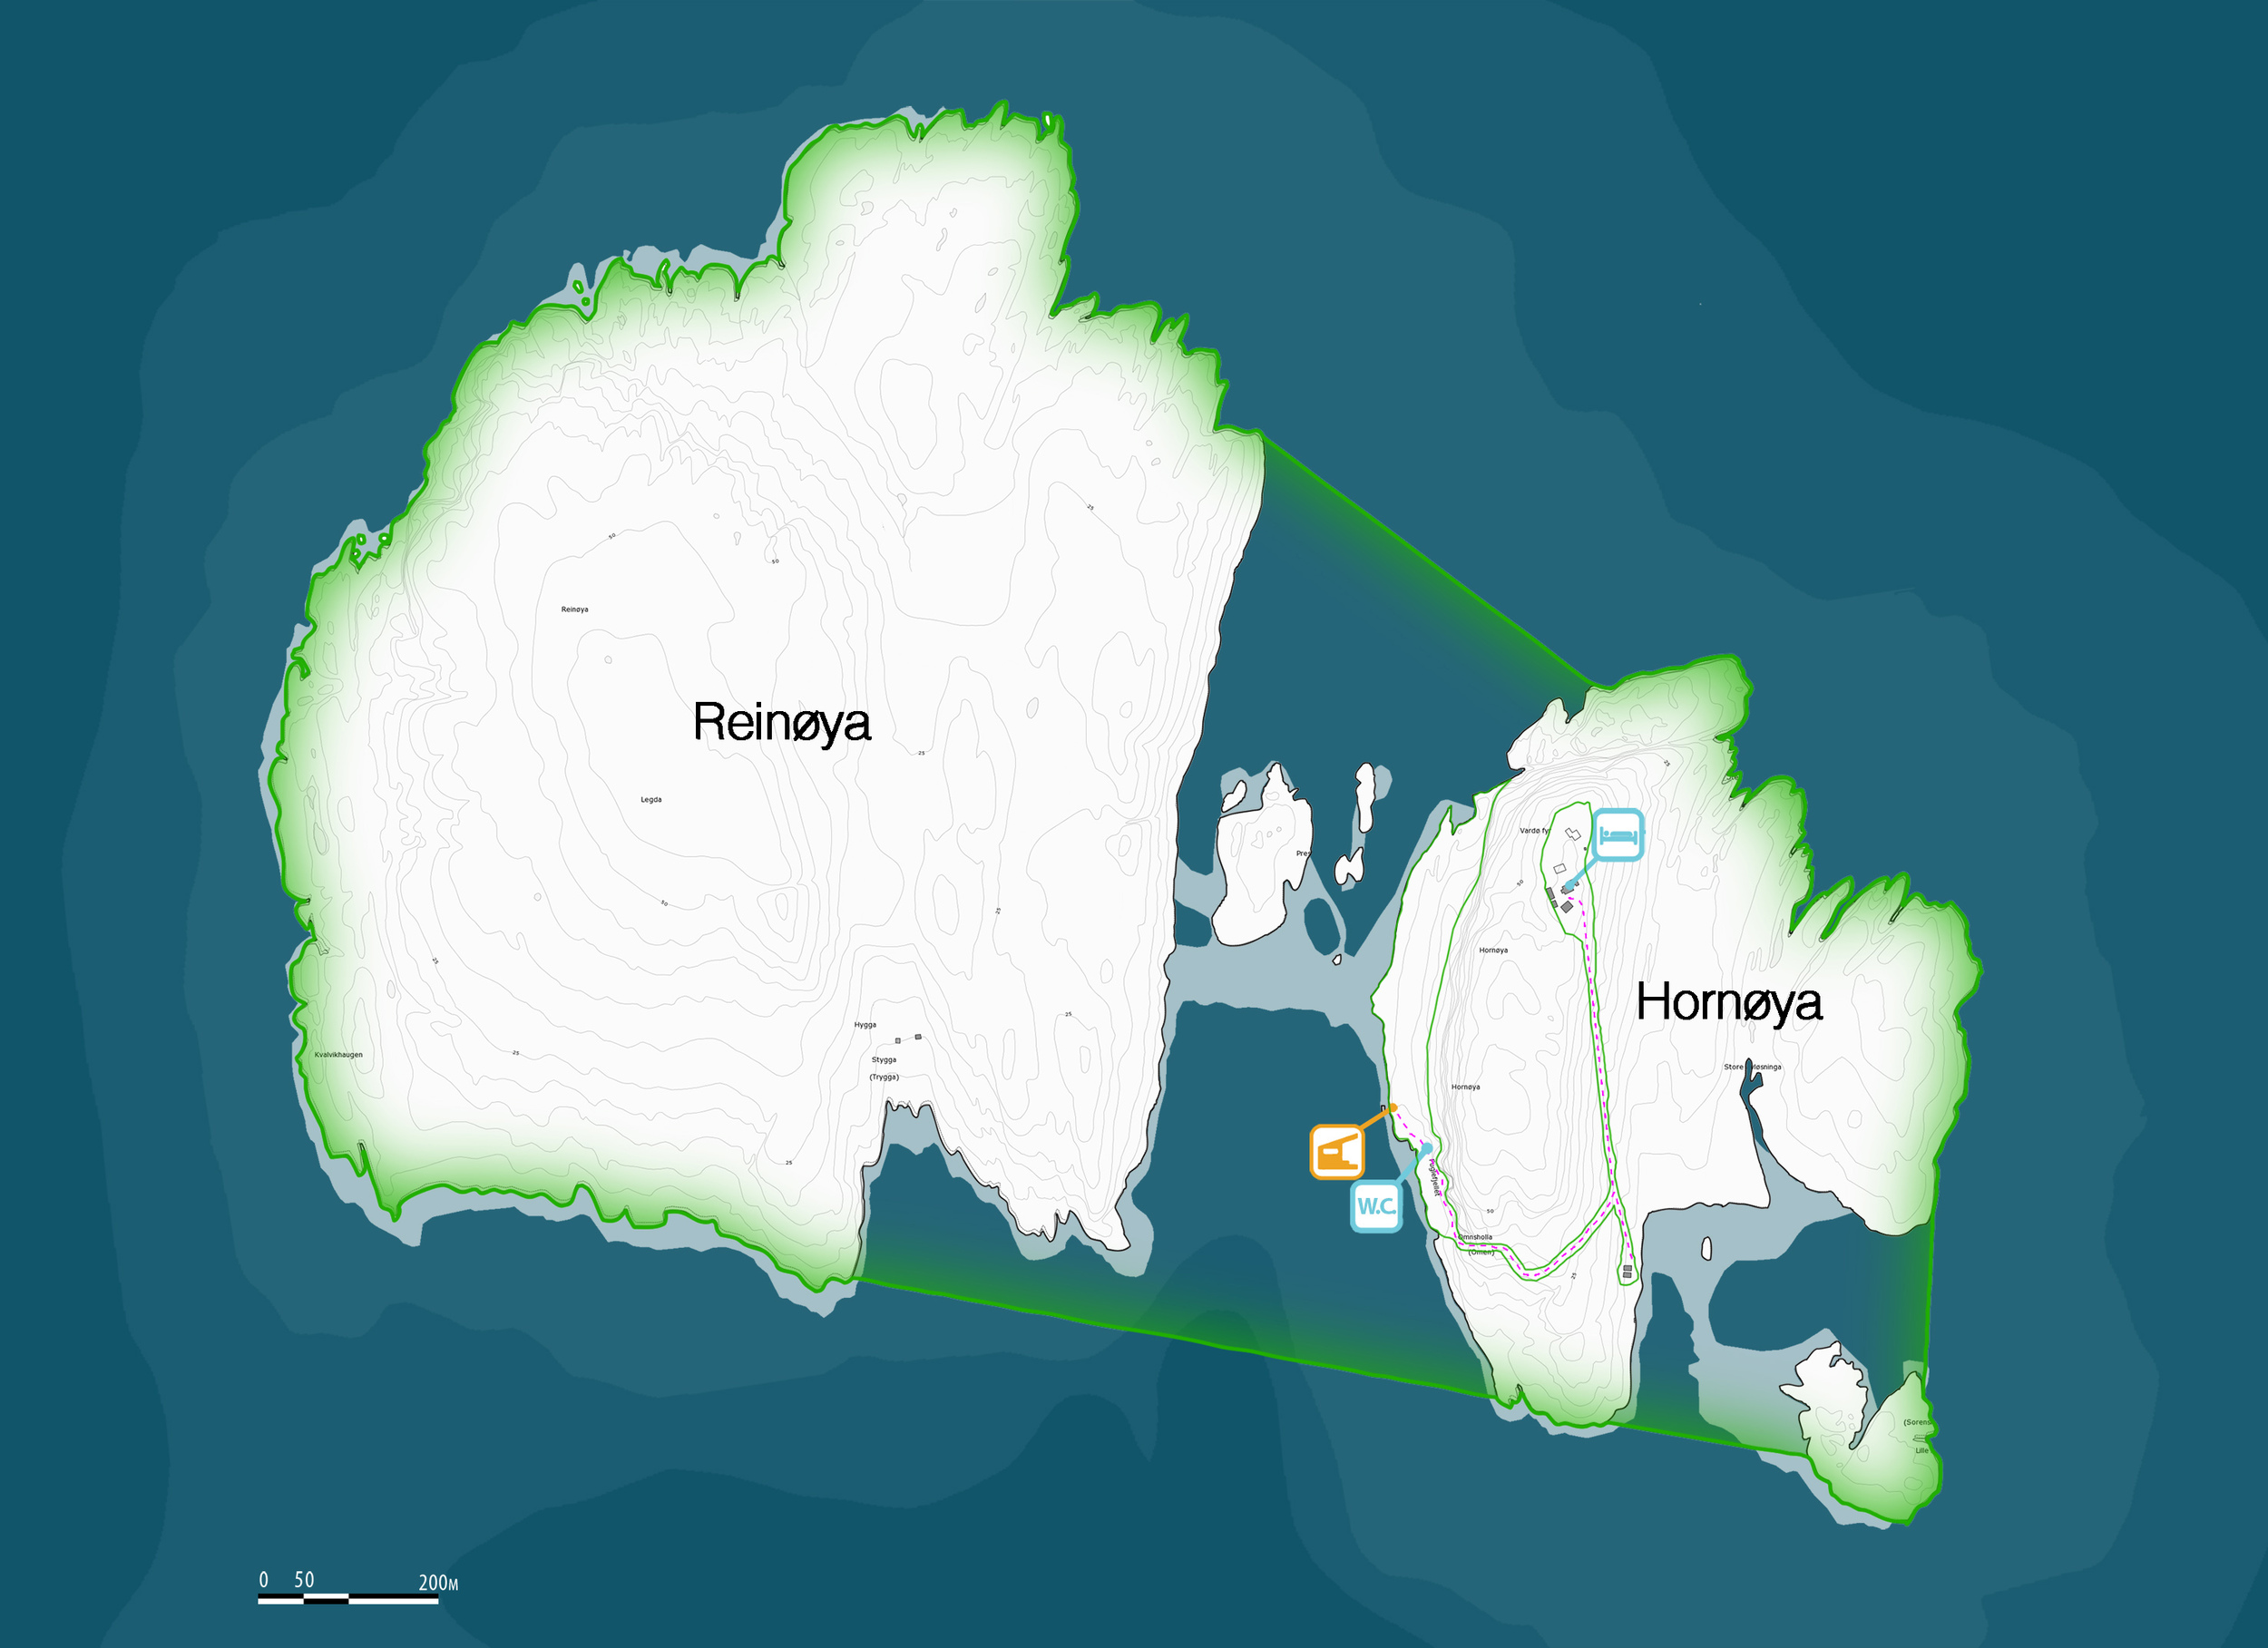 Map showing the extent of the Reinøya / Hornøya Nature Reserve (outlined in green).